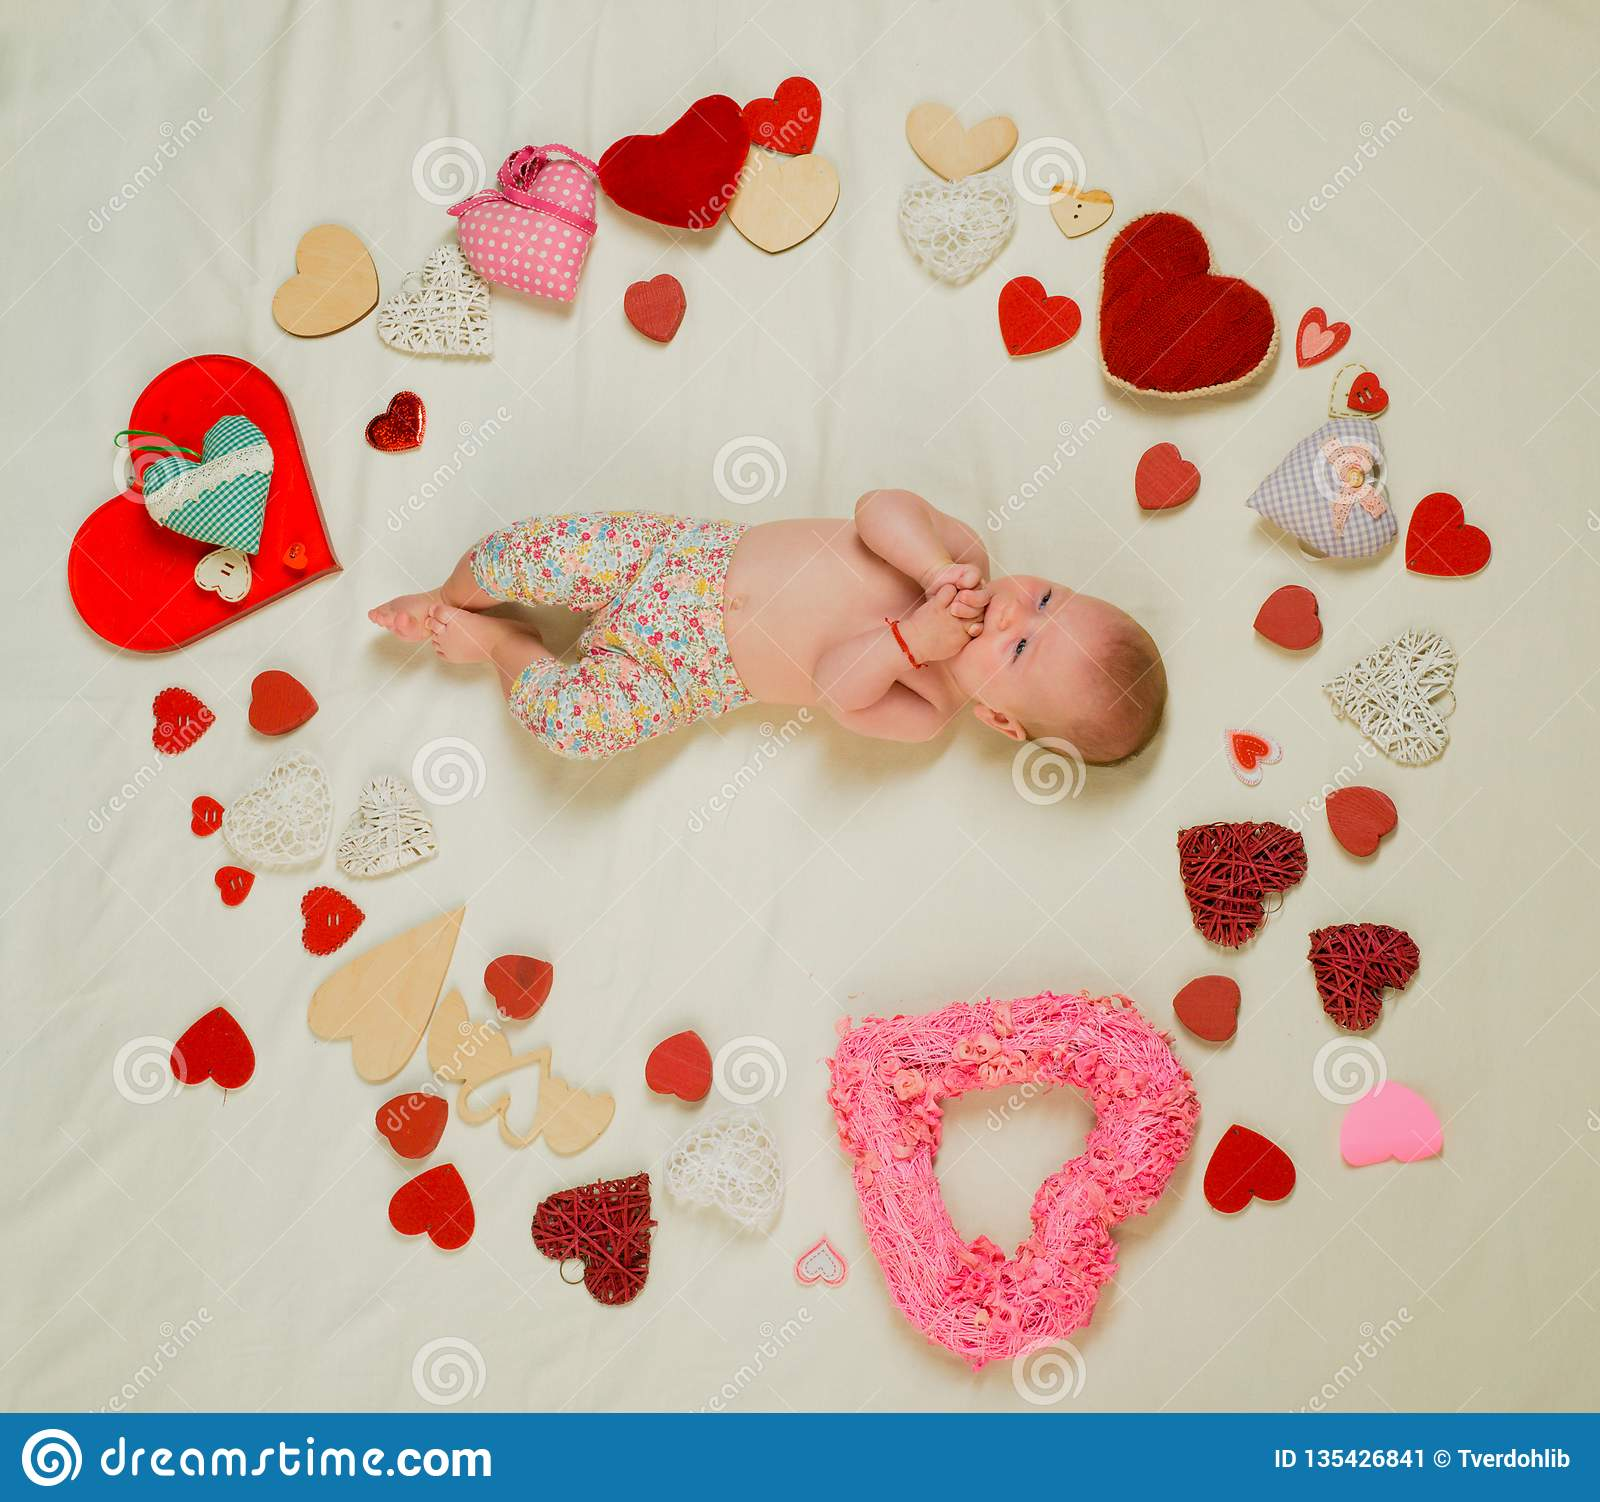 Cute Baby Girl Childhood Happiness Valentines Day Love Portrait